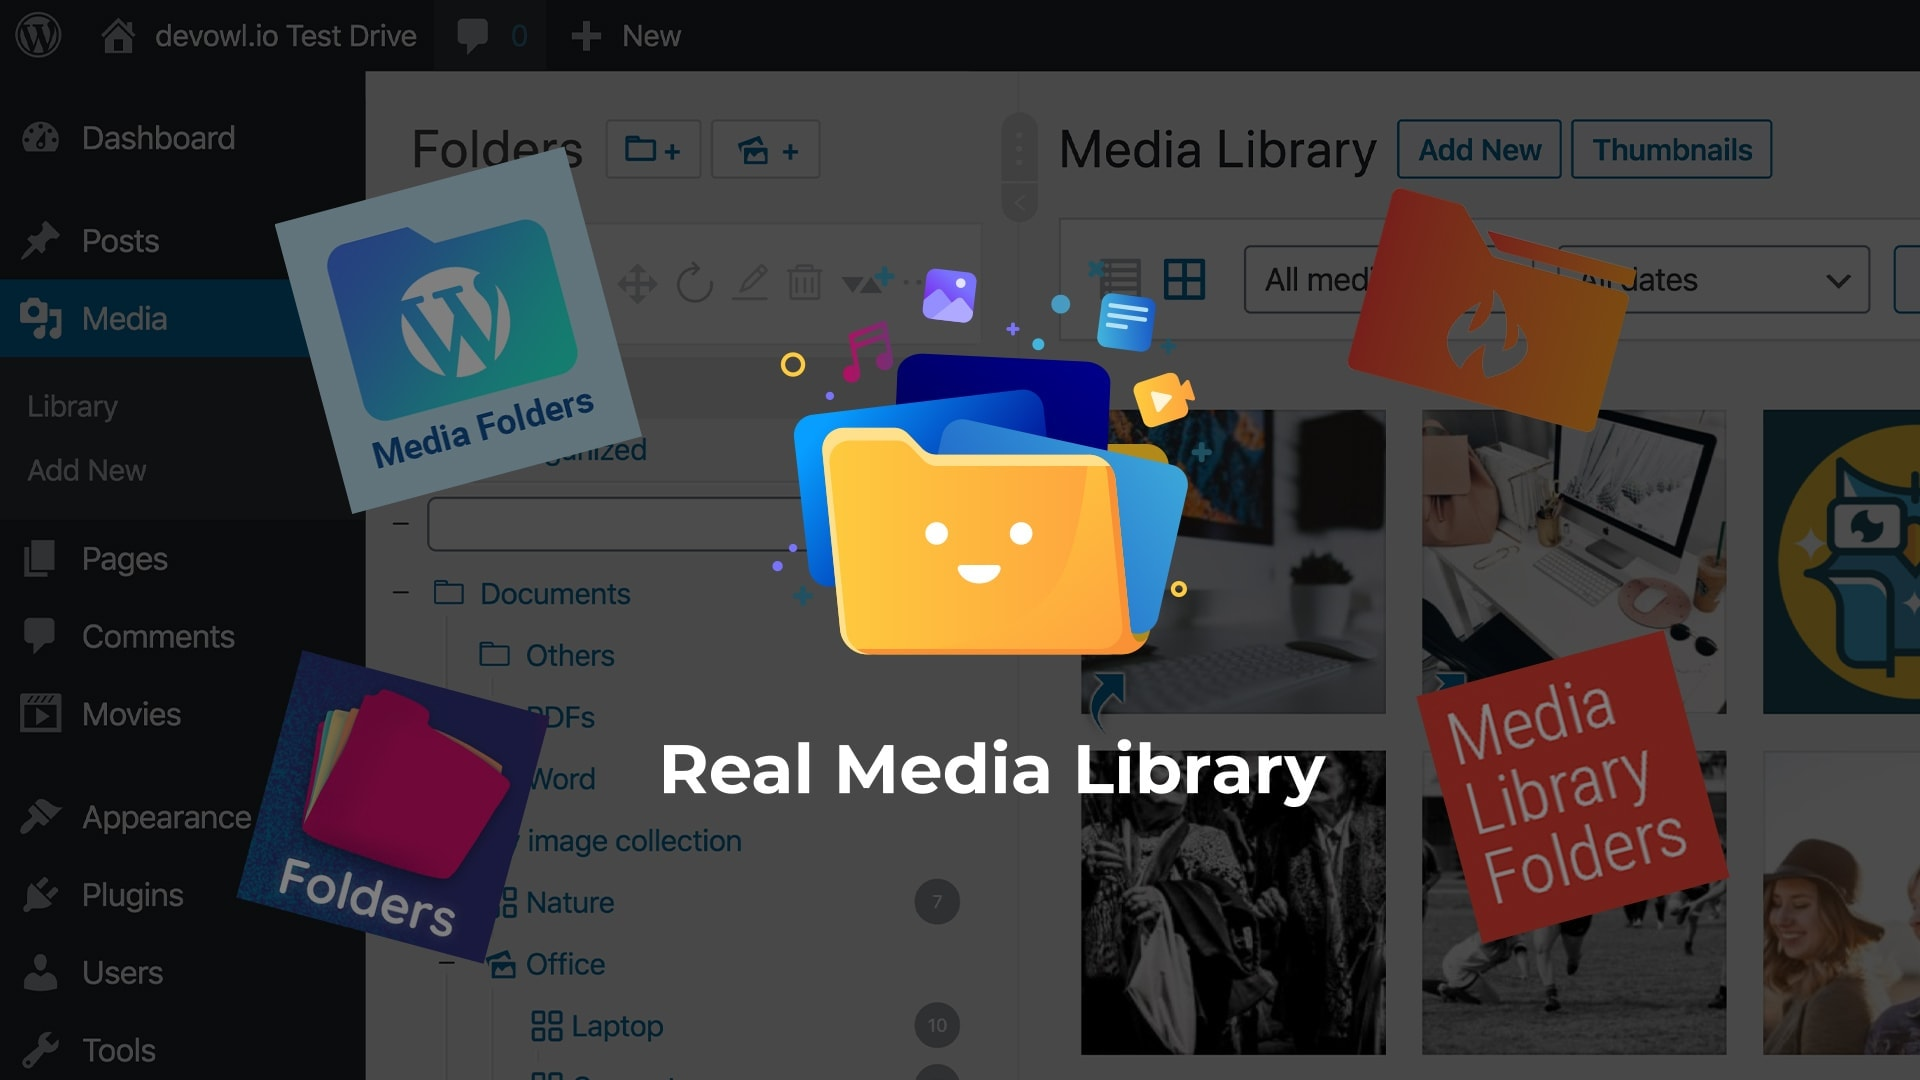 WordPress Media Library Folder Management Plugins: Best solution is Real Media Library